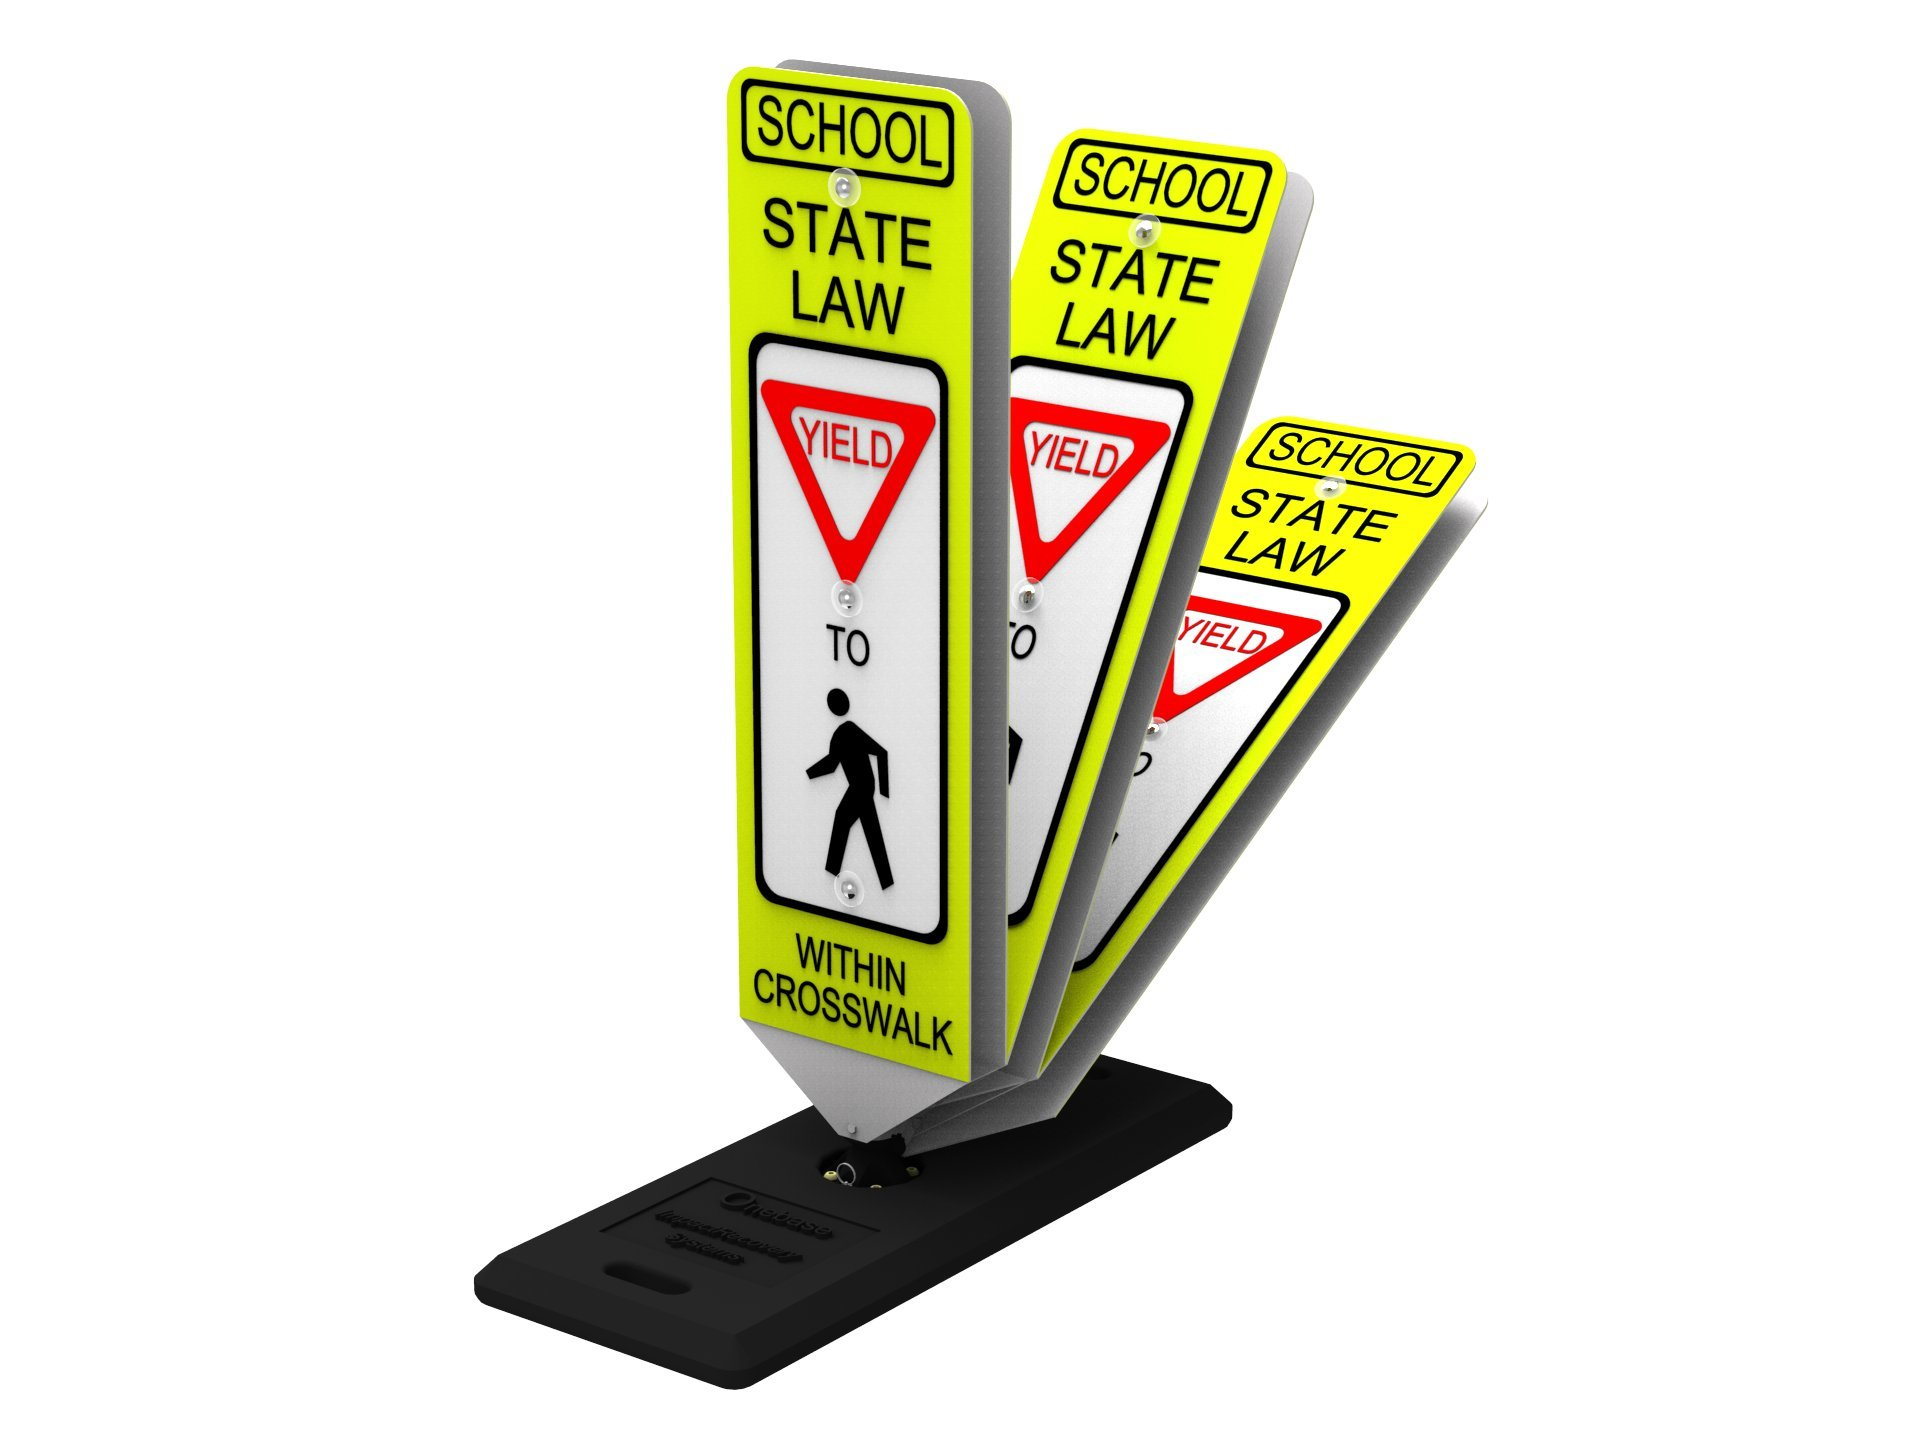 Impact Traffic - In-Street Pedestrian School Crosswalk Sign, Yield, with Portable Base - INDUSTRY BEST PERFORMER